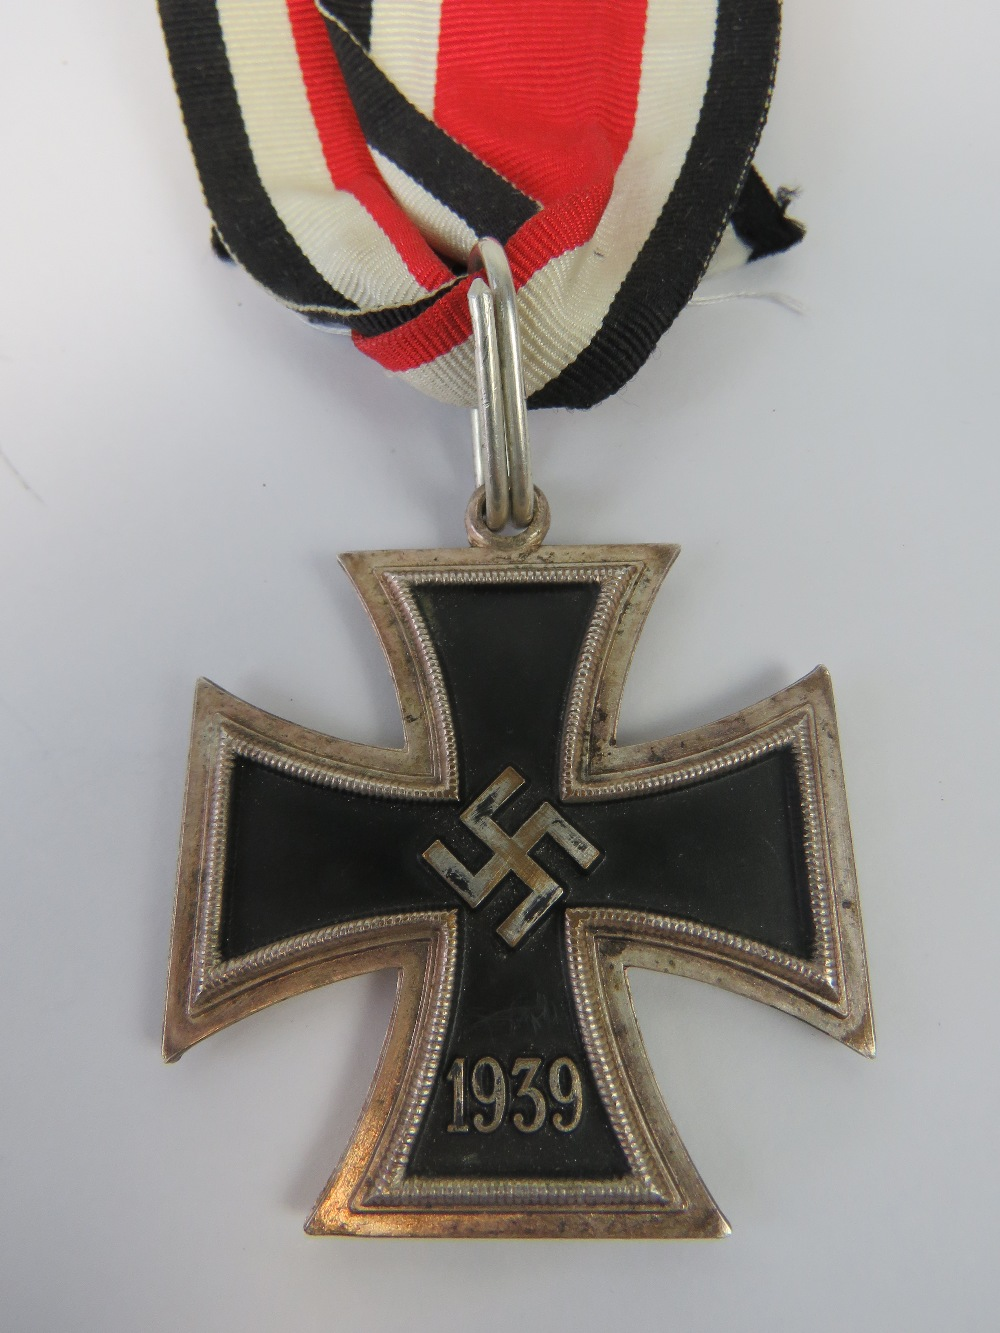 Lot 58 - A WWII German Knights Cross medal complete with ribbon.